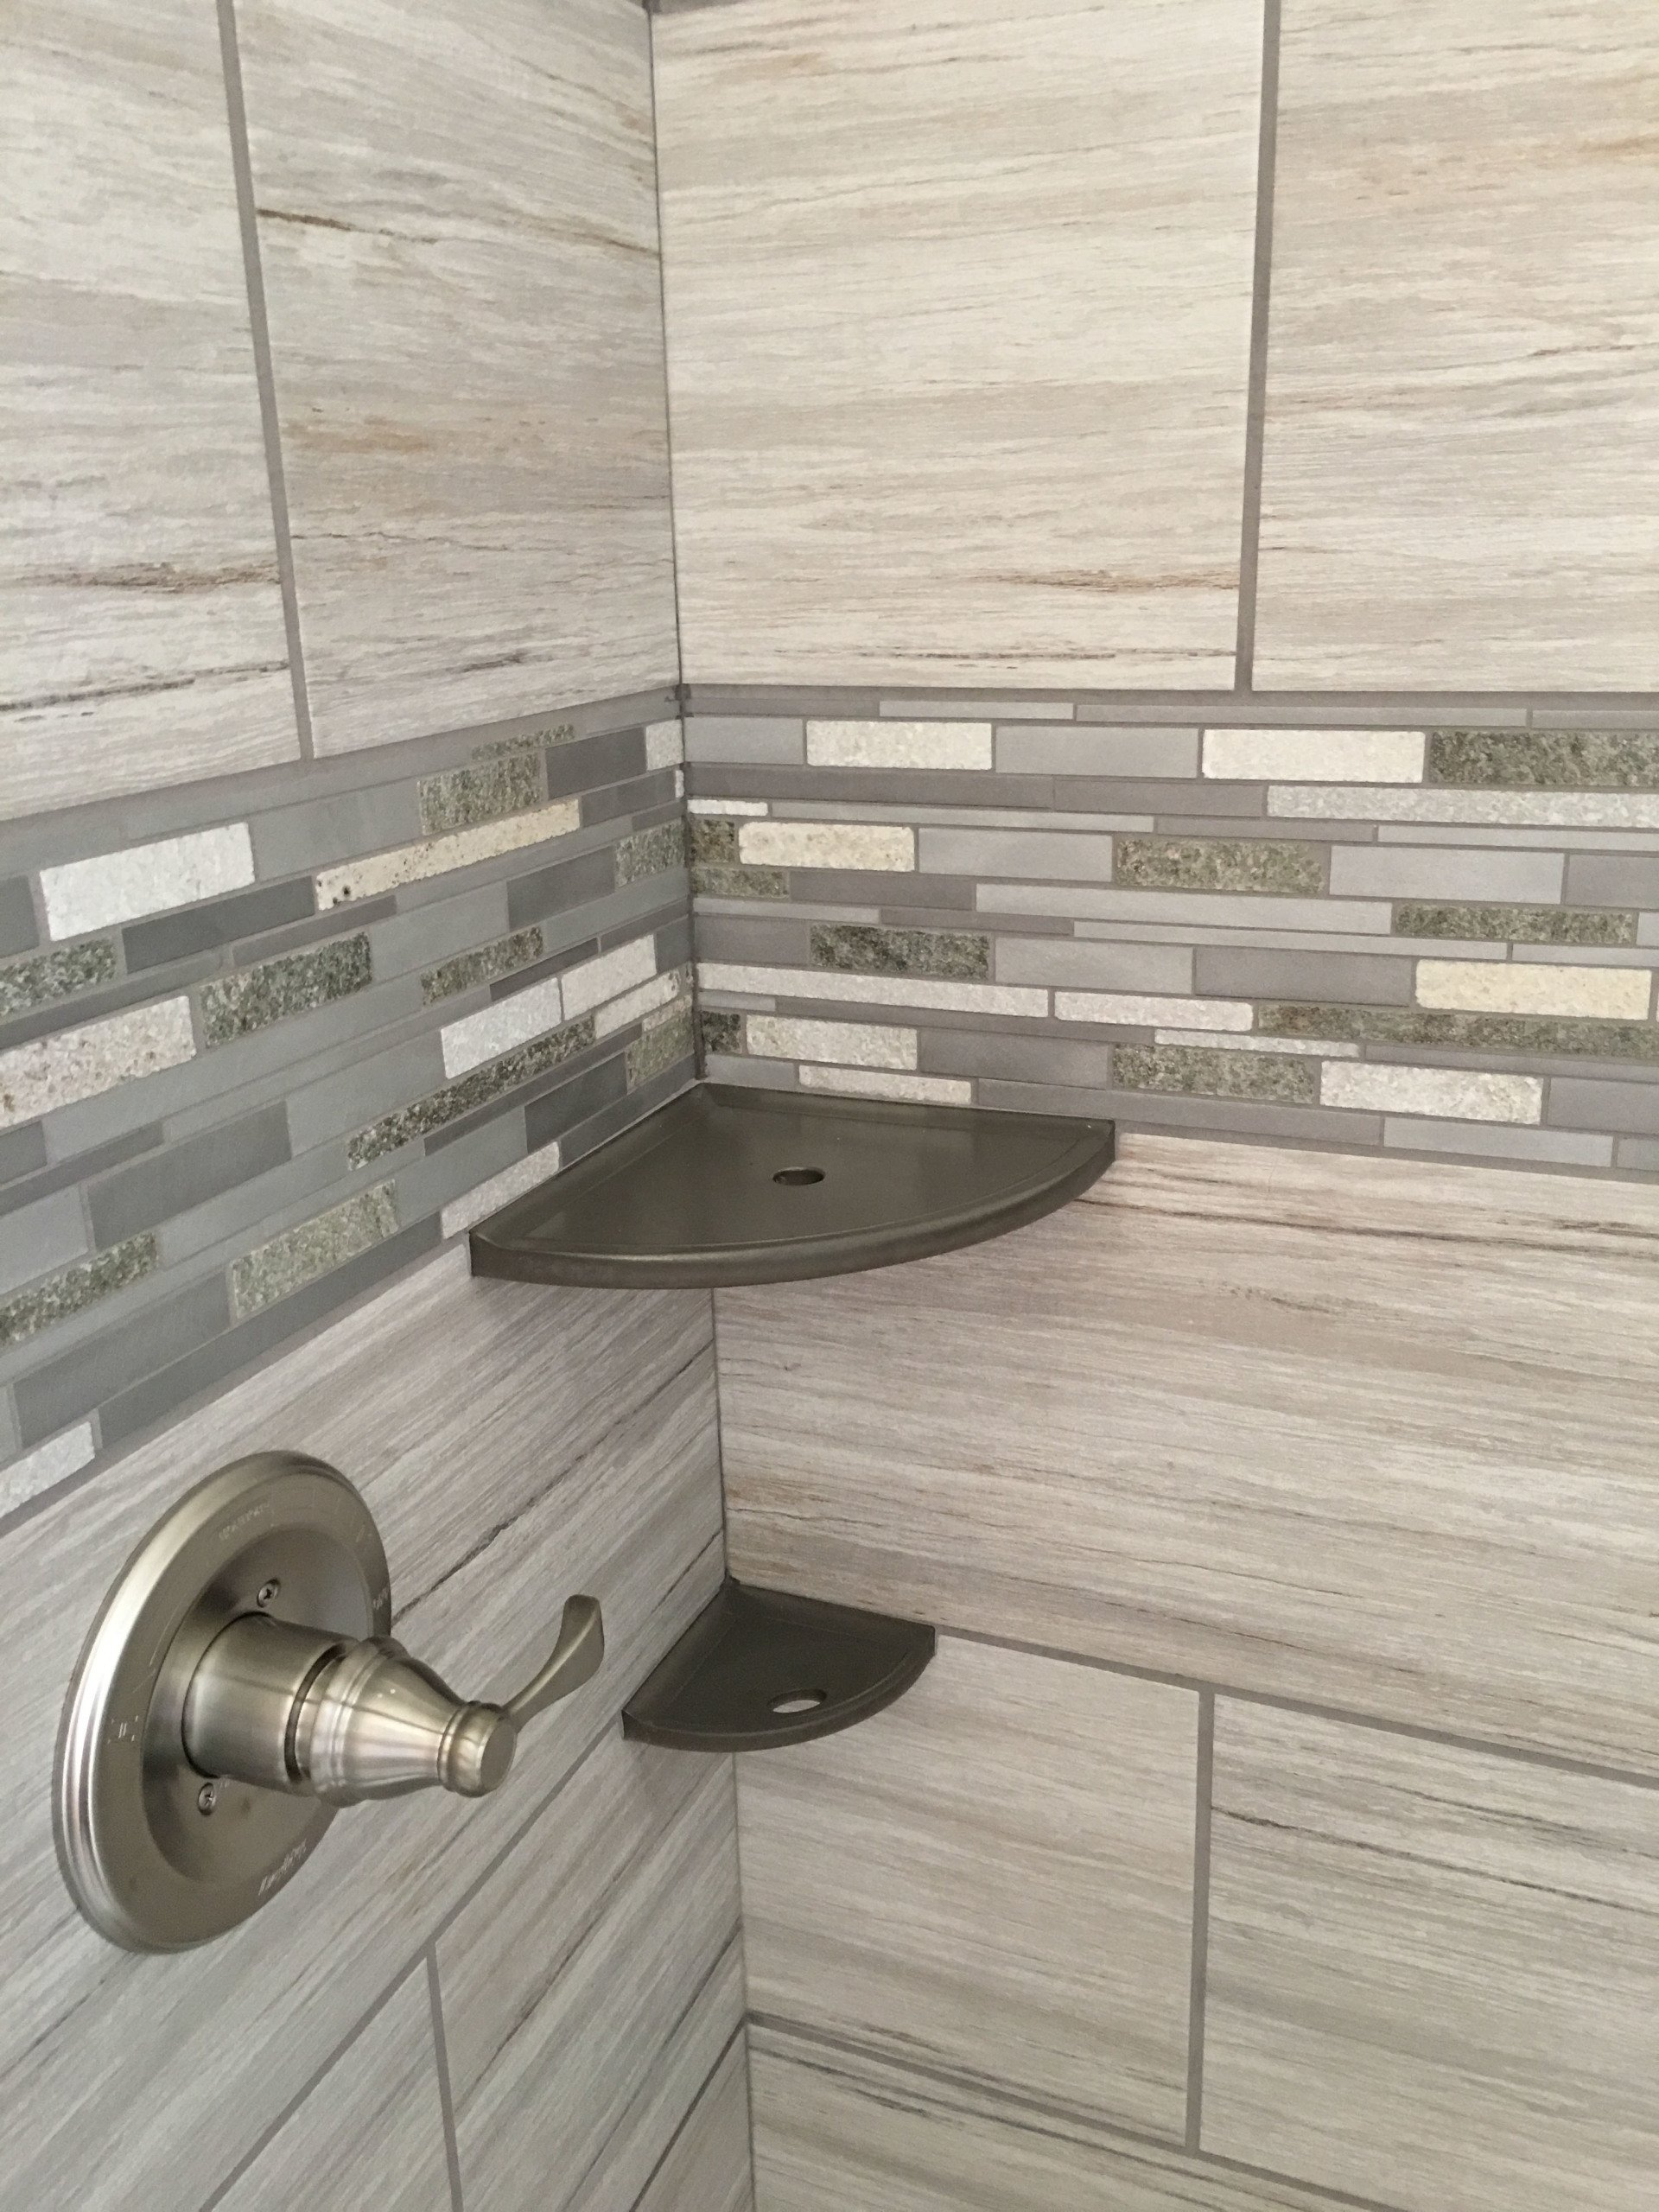 What Is The Best Height To Use For A Shower Tile Border